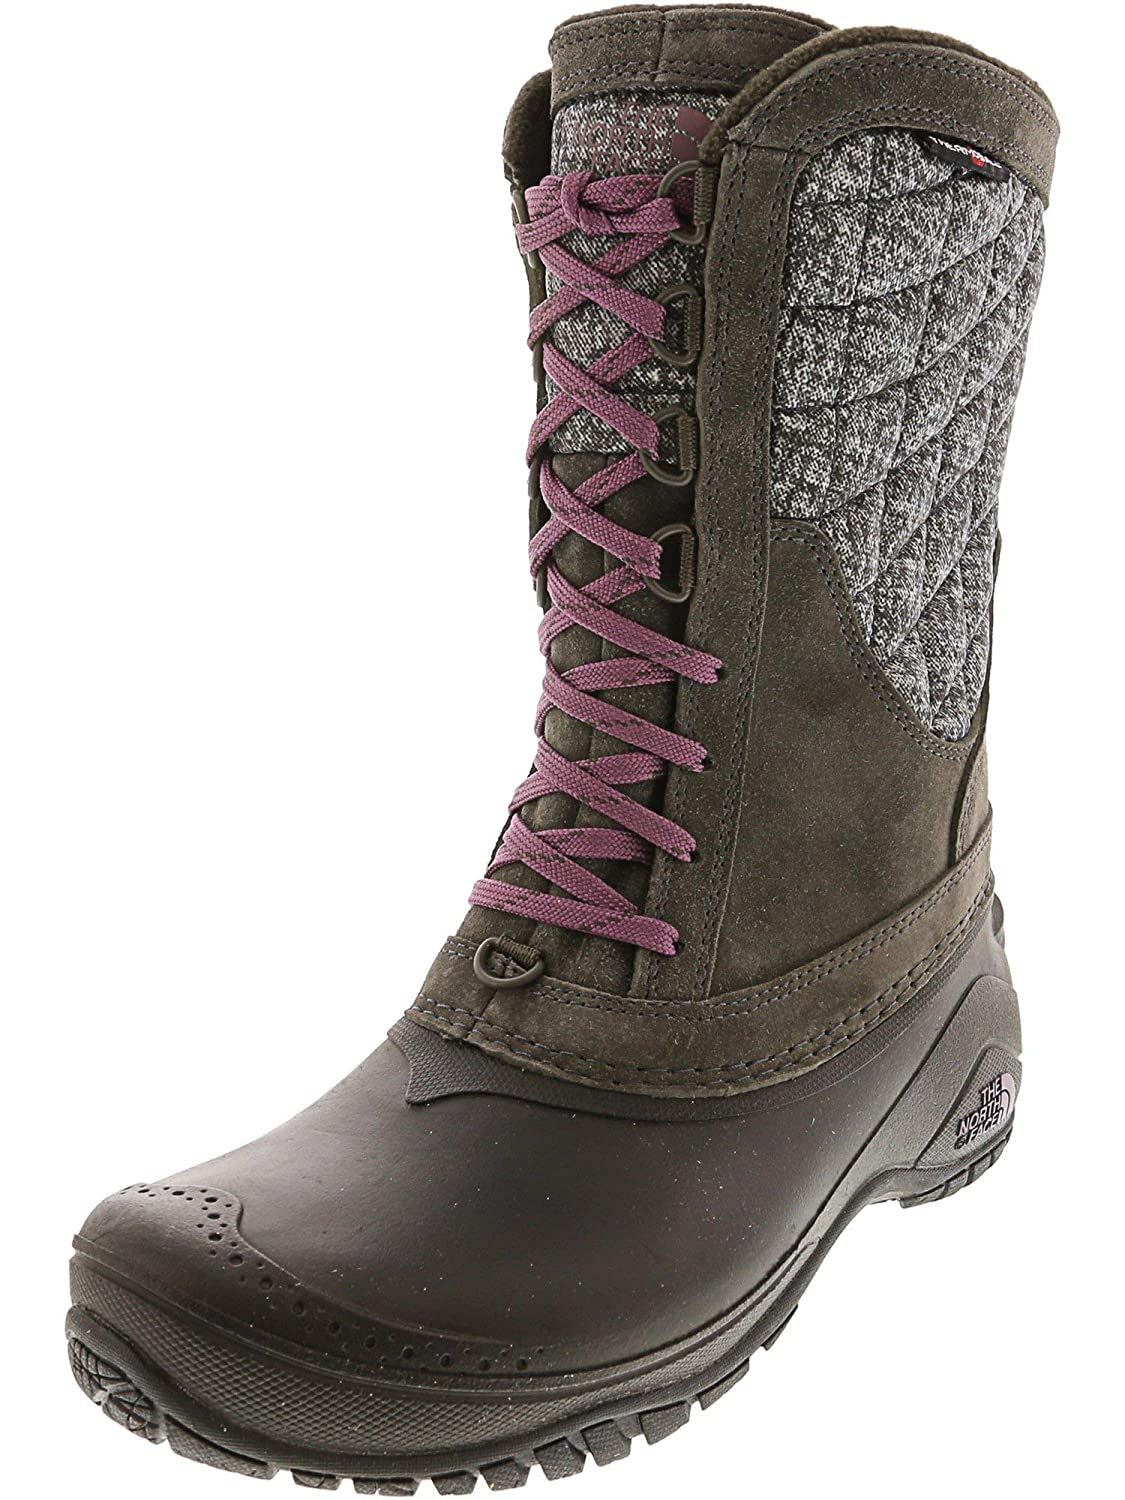 Noir The North Face W Thermoball Utility Bottes de Prougeection pour Femme